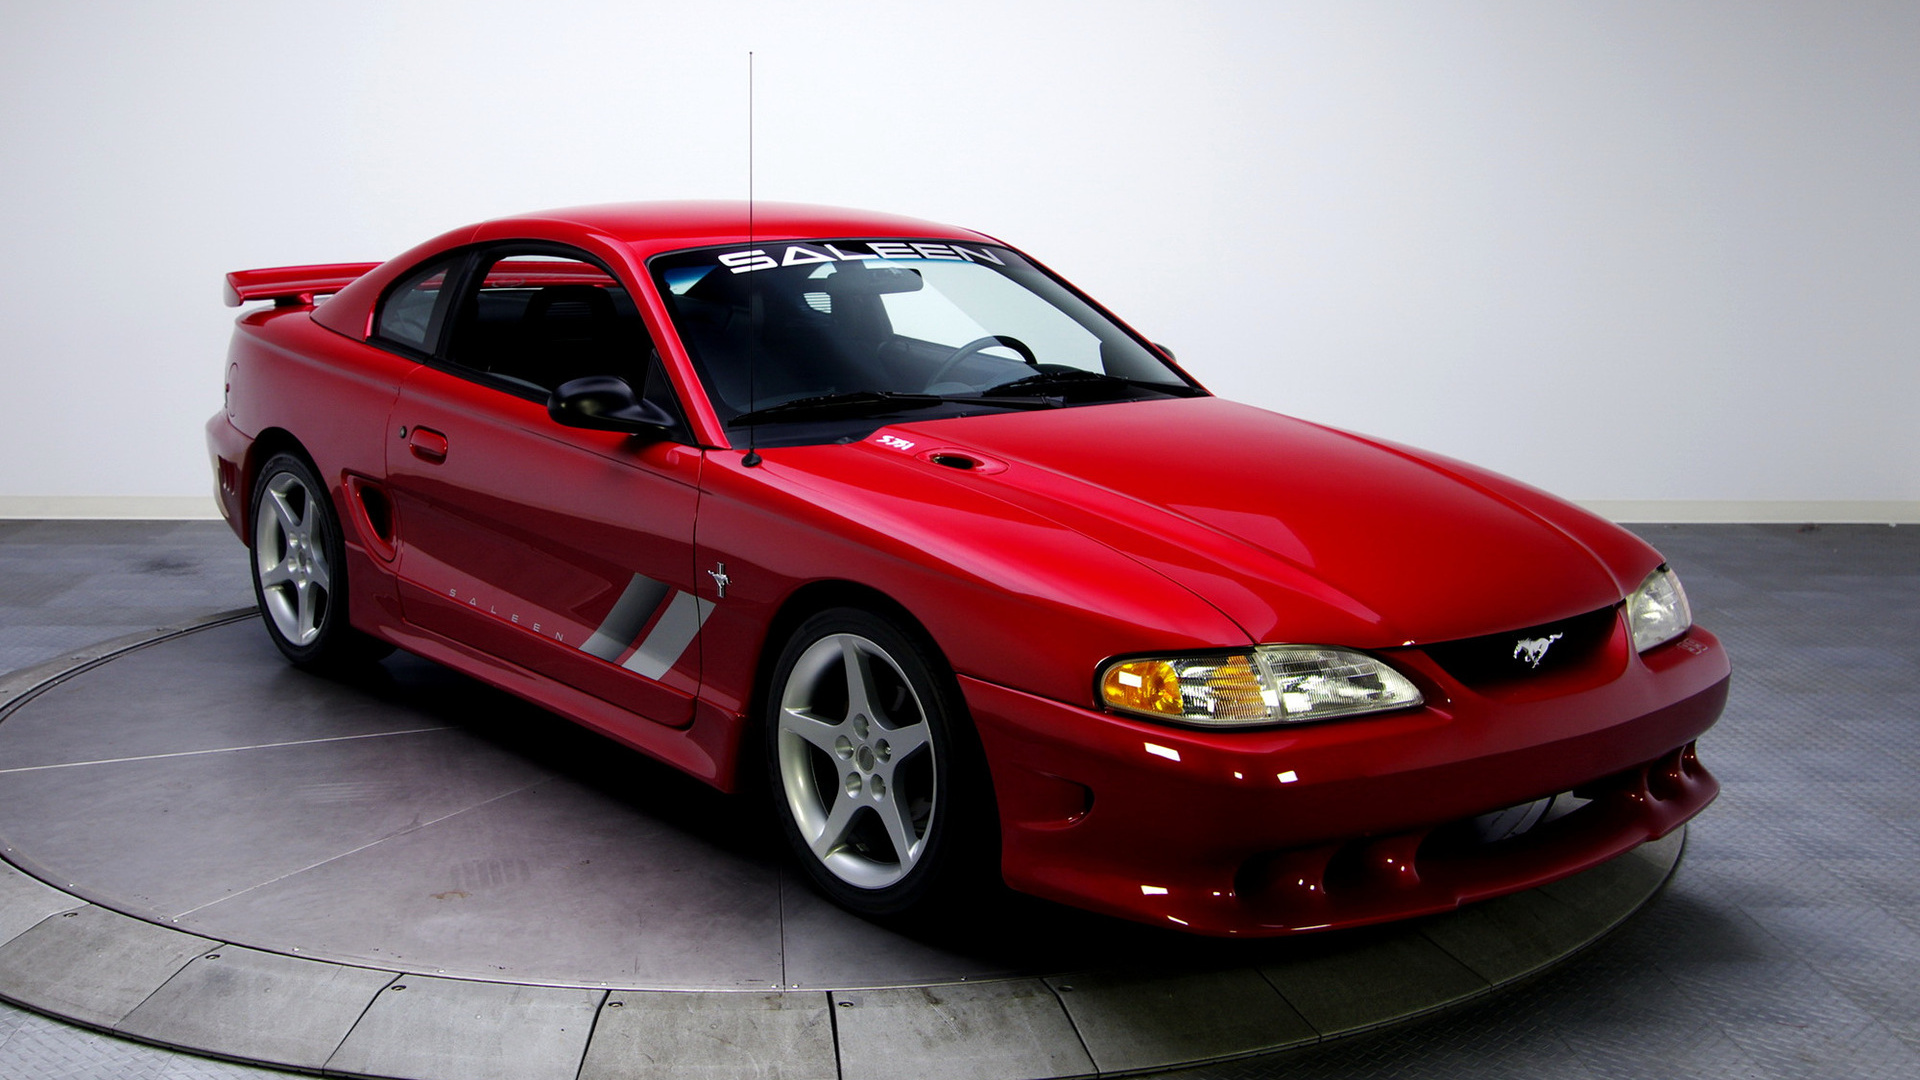 Saleen S351 (1995) Wallpapers and HD Images - Car Pixel